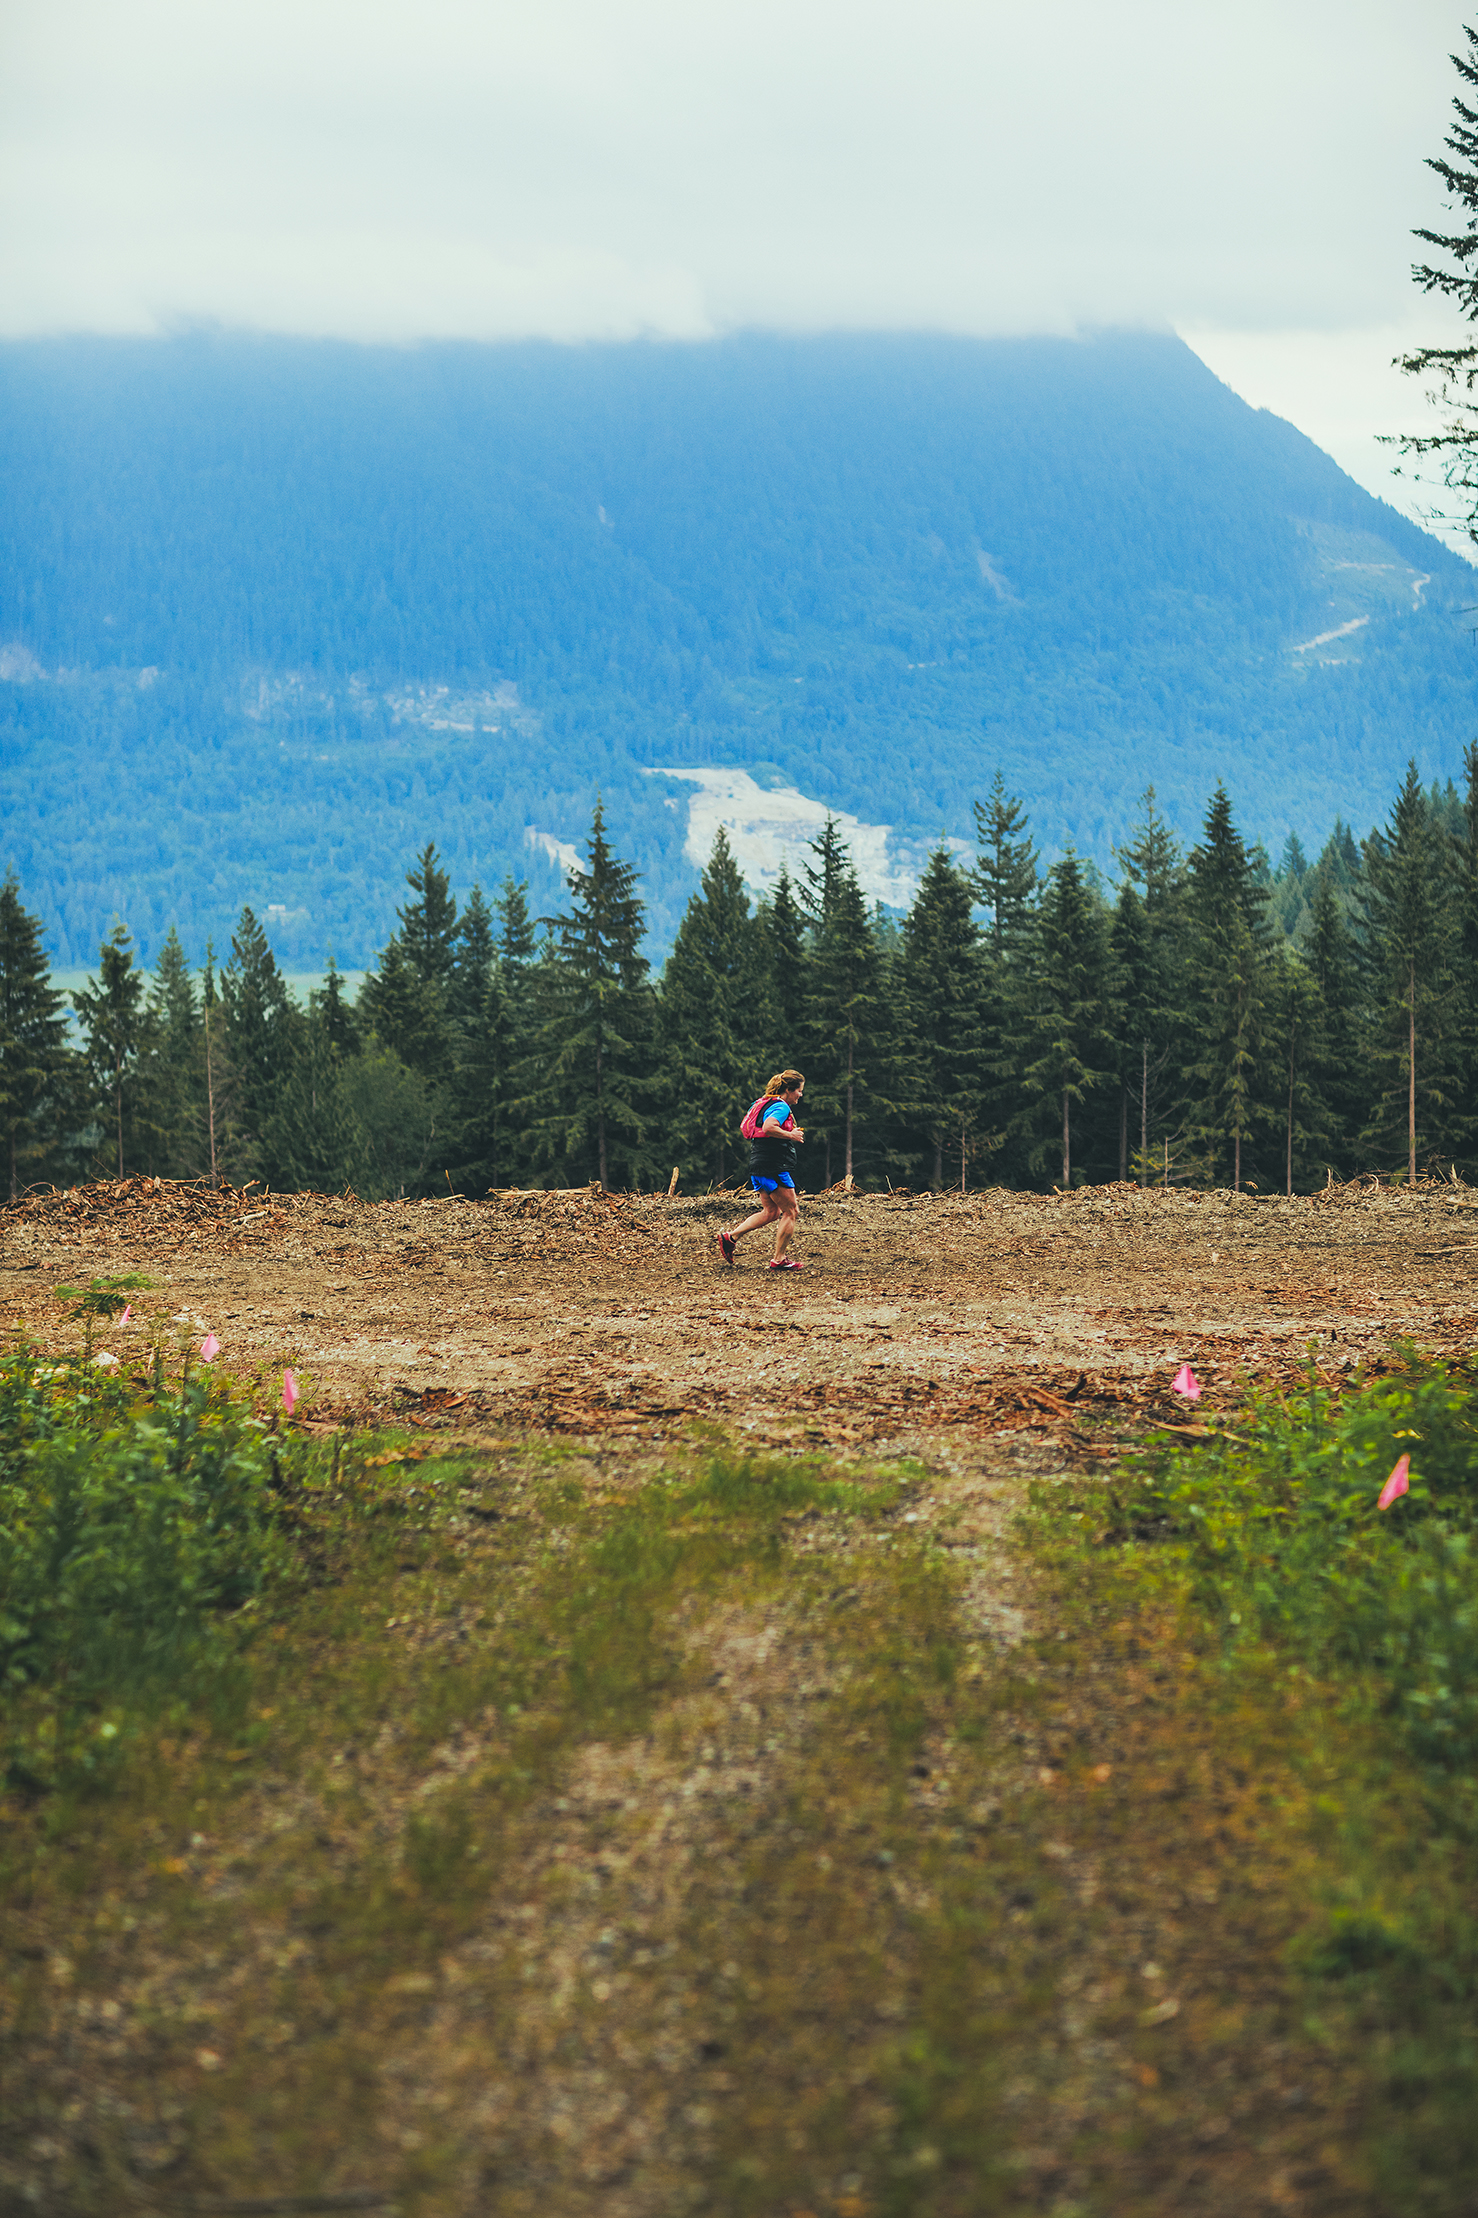 Fraser Valley Trail Races - Bear Mountain - IMG_1782 by Brice Ferre Studio - Vancouver Portrait Adventure and Athlete Photographer.jpg